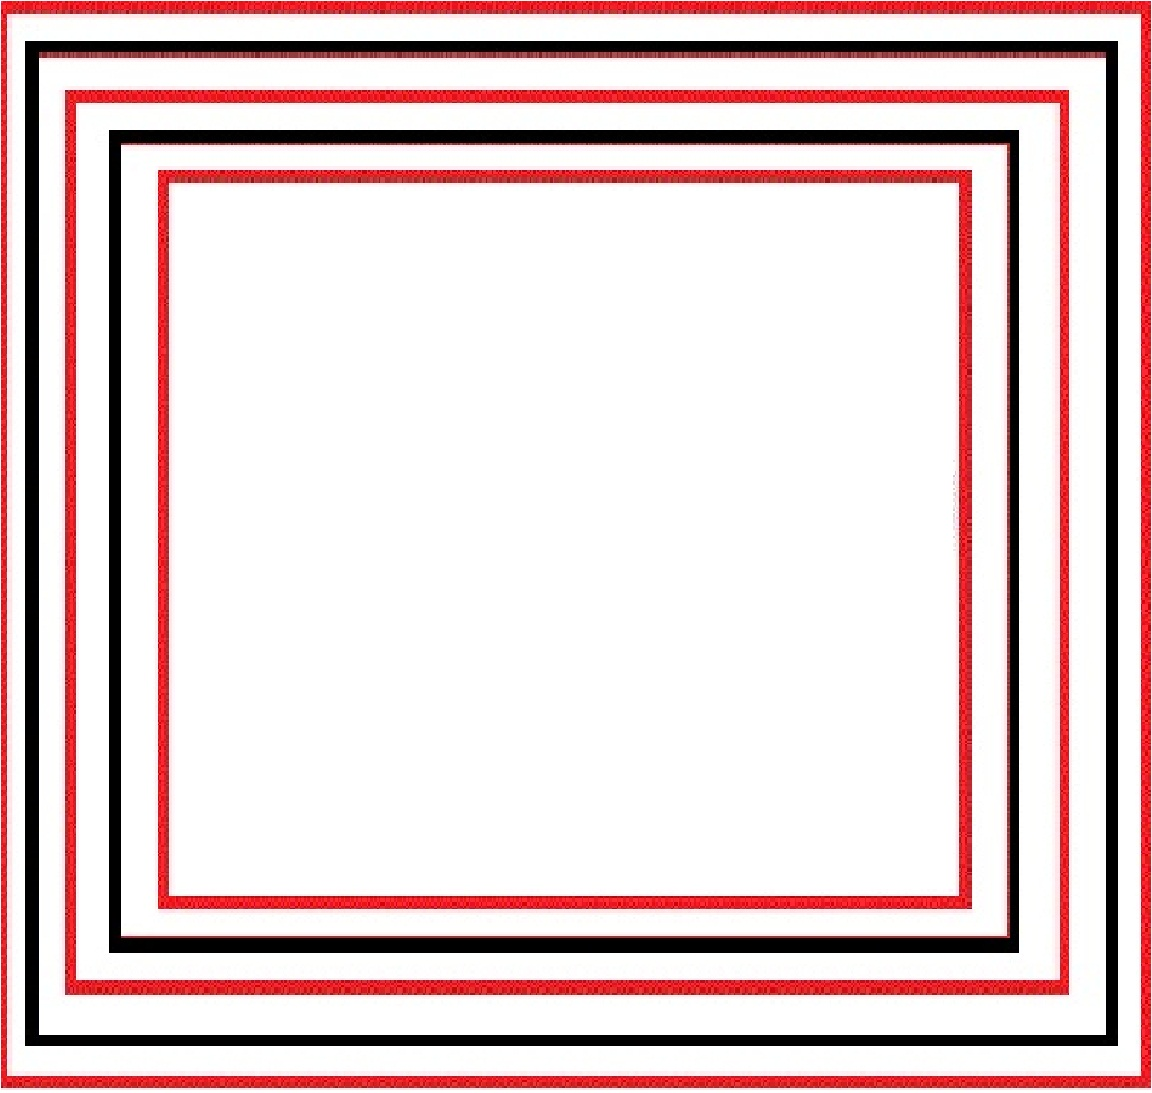 Red black frame clipart image free stock Printable Colorful Red Black Frame Page Borders Design HD ... image free stock